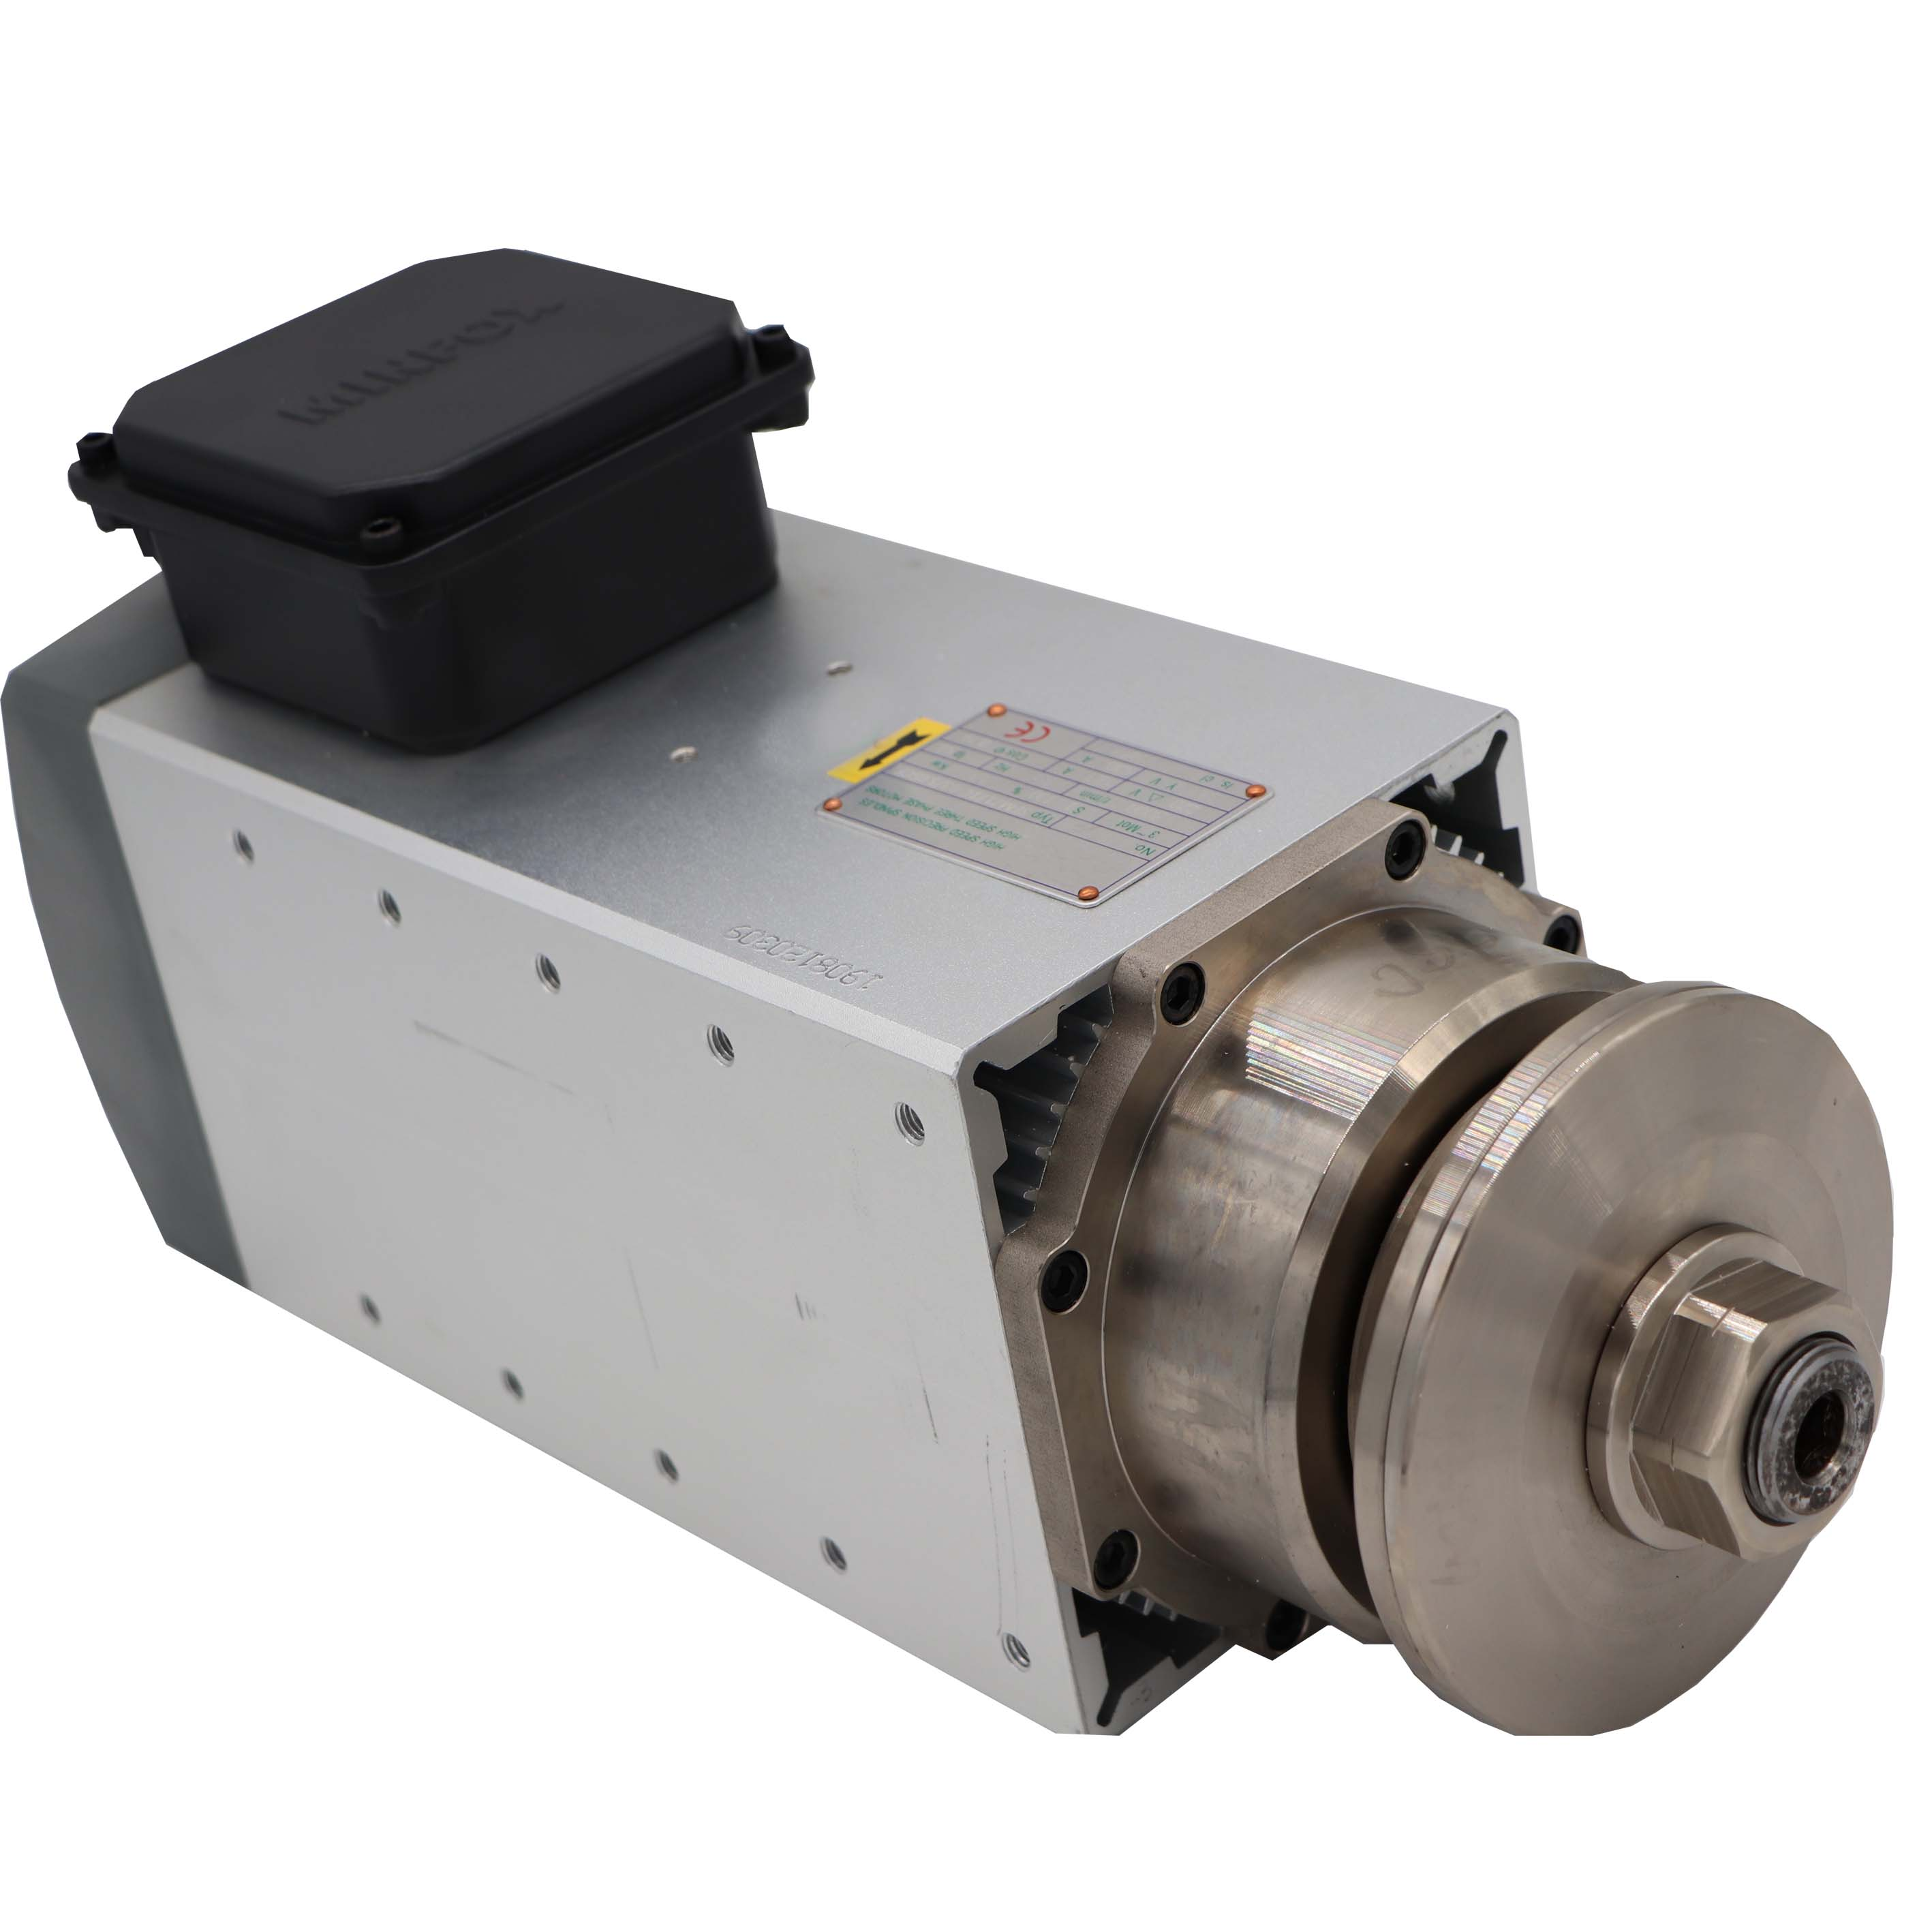 High Precision And Speed Arbor Saw Air-cooled Spindle Motor 3KW 3000rpm